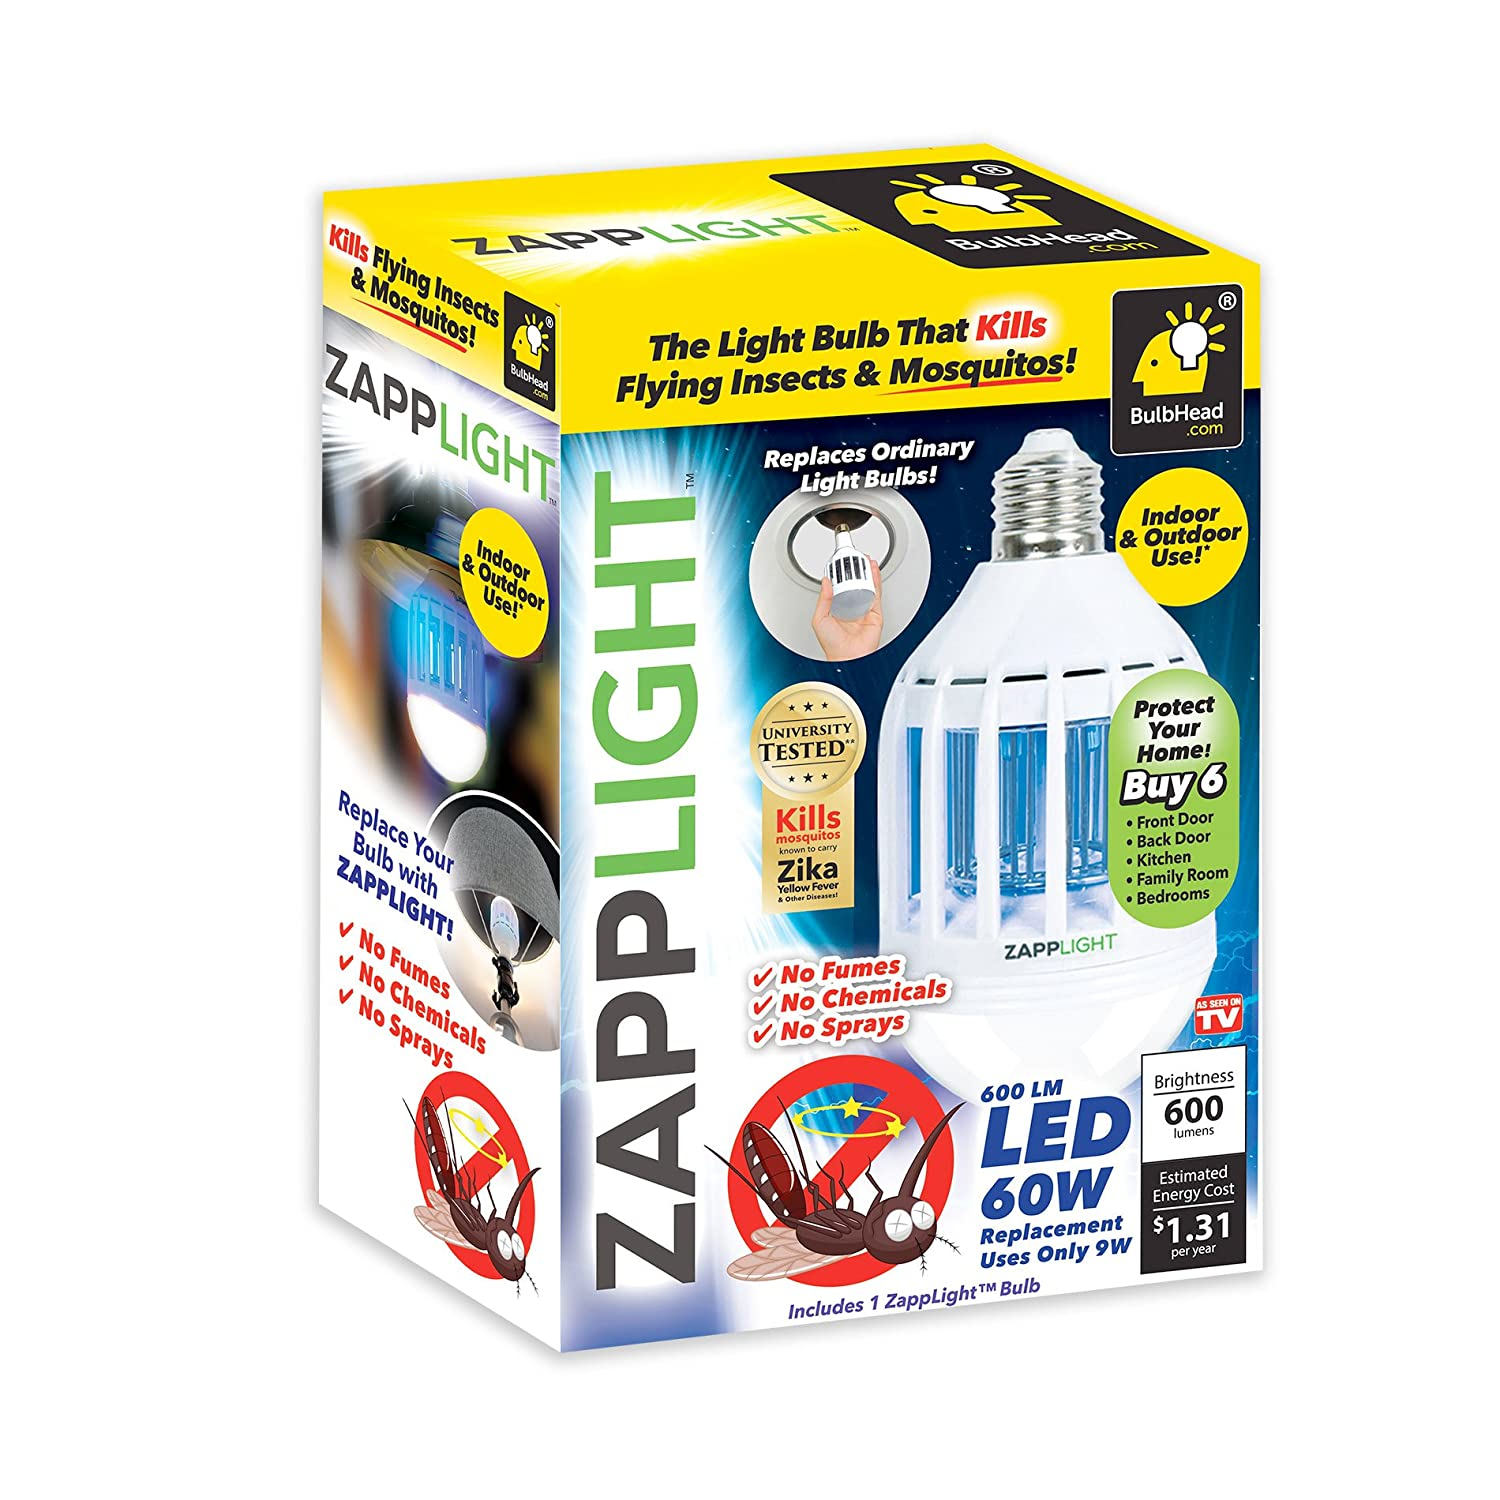 zapplight led 60w bug zapper bulb by bulbhead insect